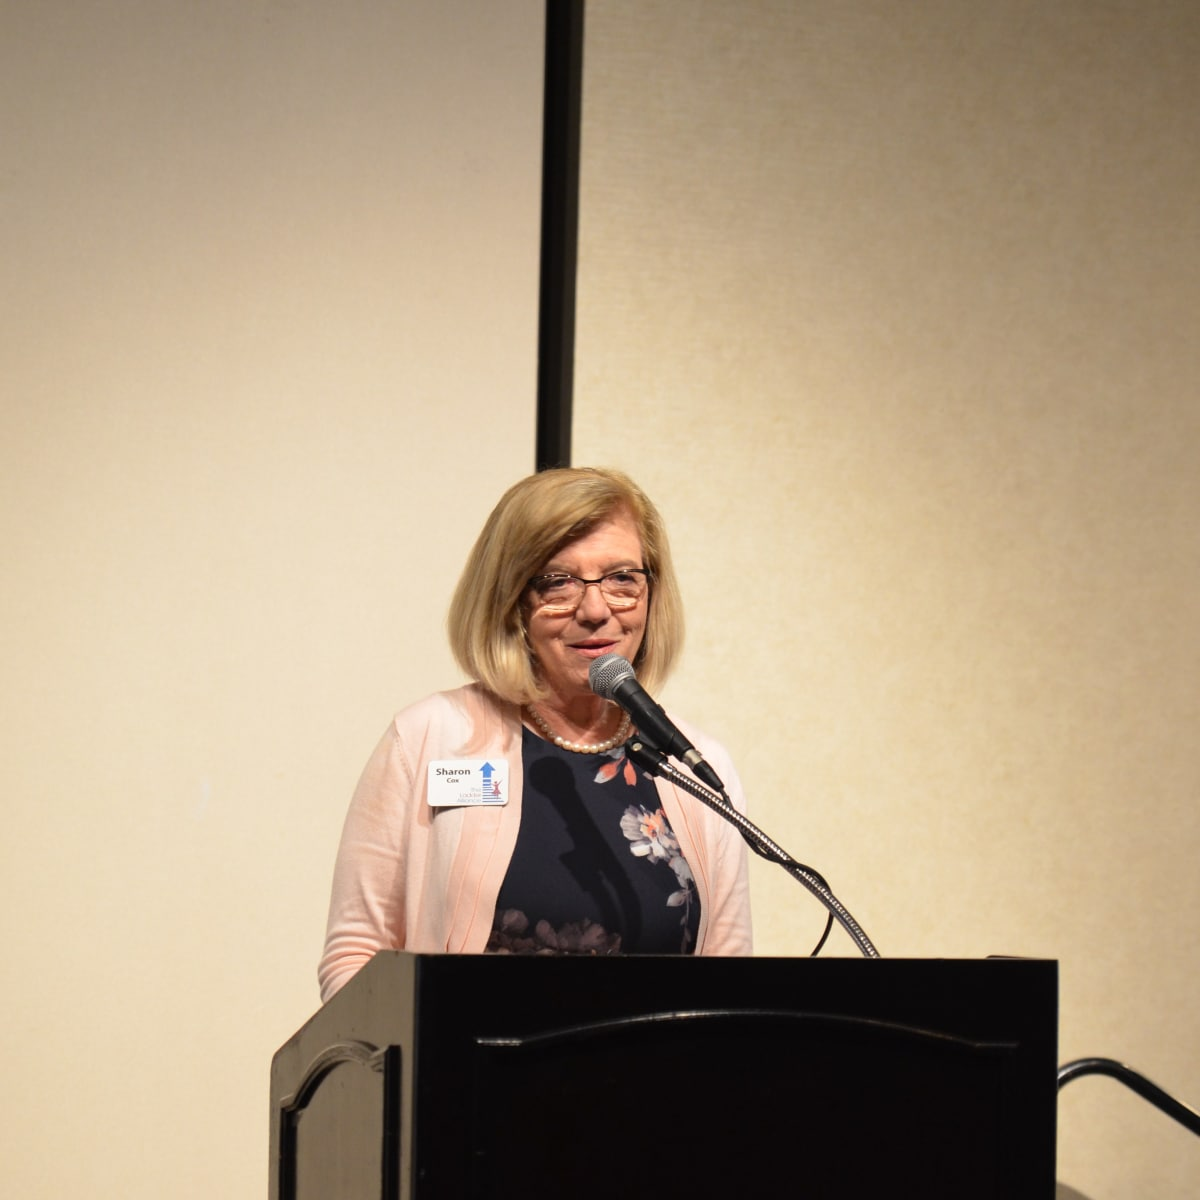 It's in the Bag luncheon 2018, Sharon Cox